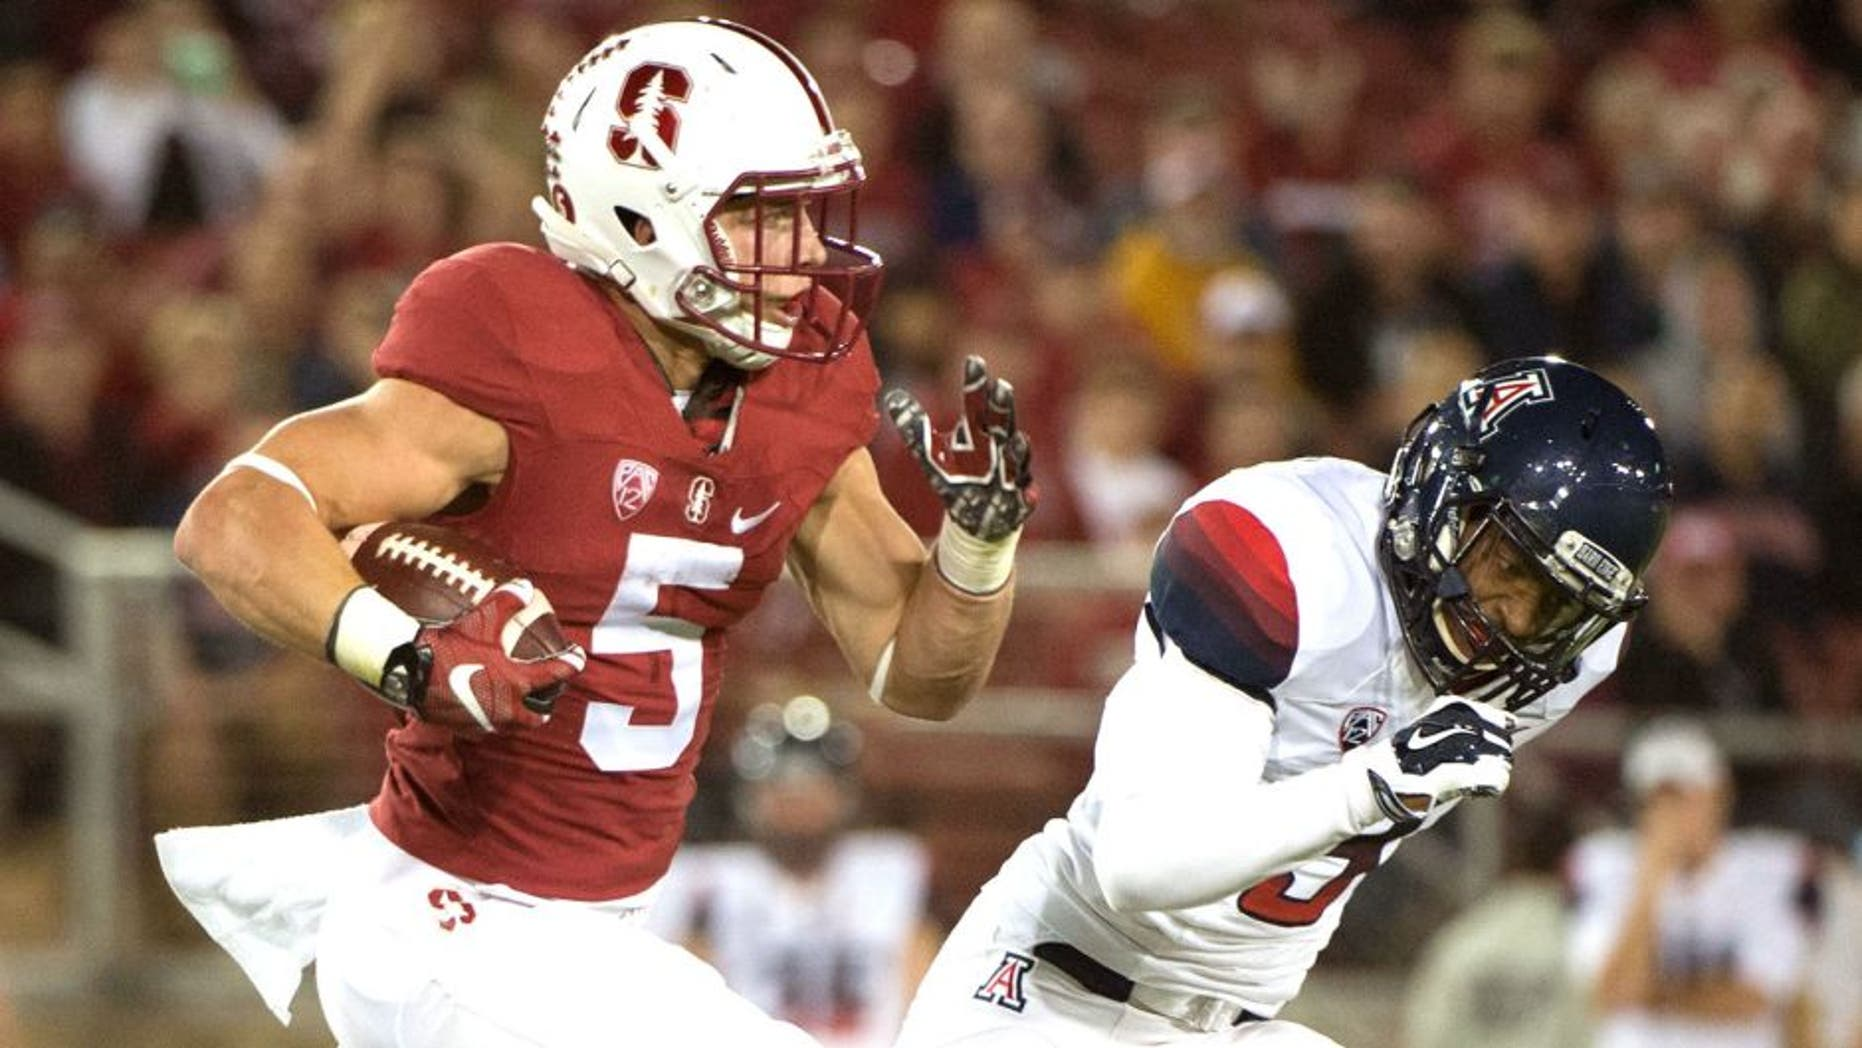 October 3, 2015; Stanford, CA, USA; Stanford Cardinal running back Christian McCaffrey (5) runs the football against Arizona Wildcats cornerback Cam Denson (3) during the first quarter at Stanford Stadium. Mandatory Credit: Kyle Terada-USA TODAY Sports